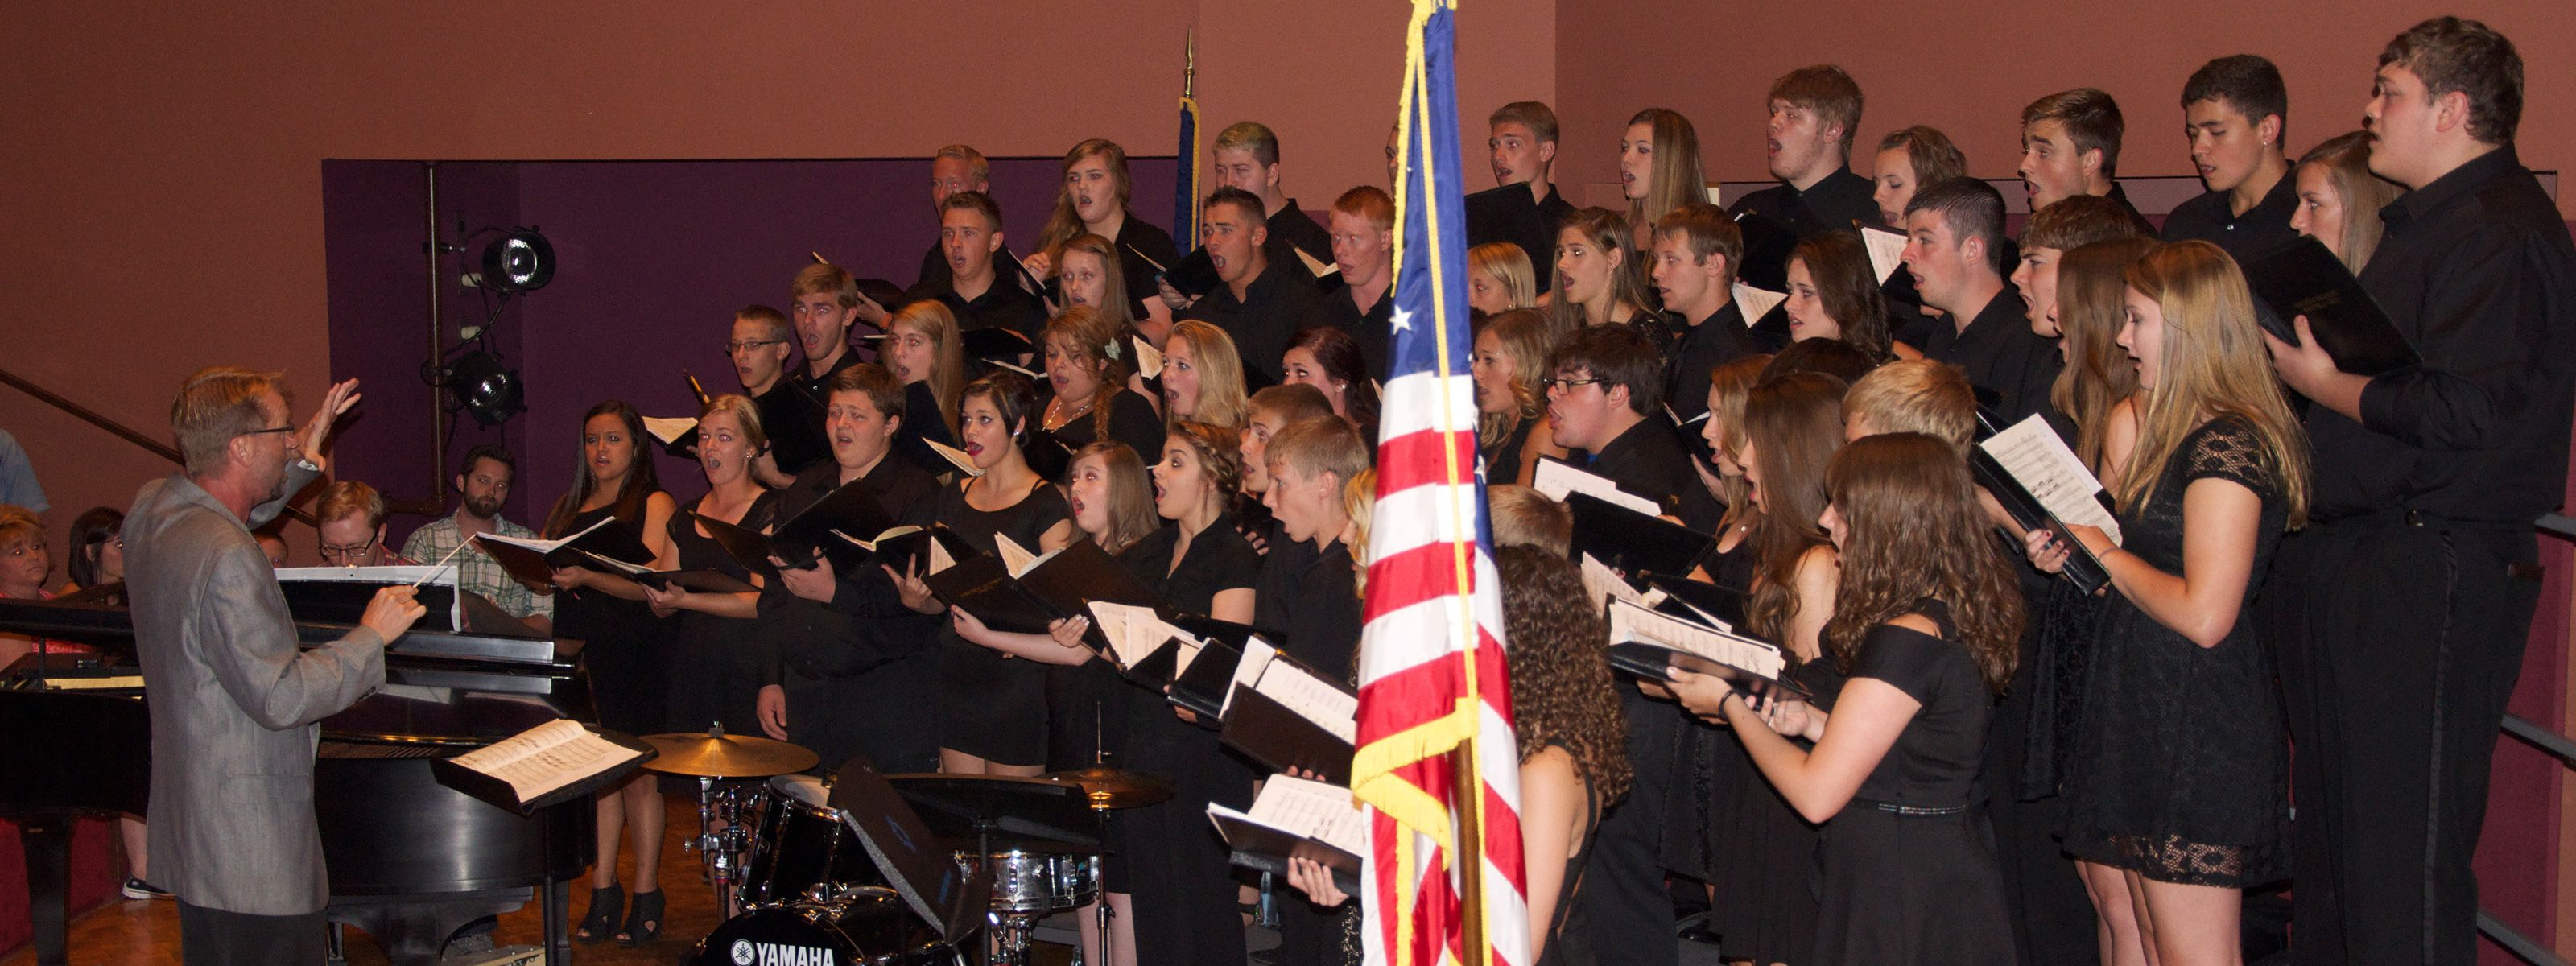 Choir performing in Seward, Nebraska on July 4th